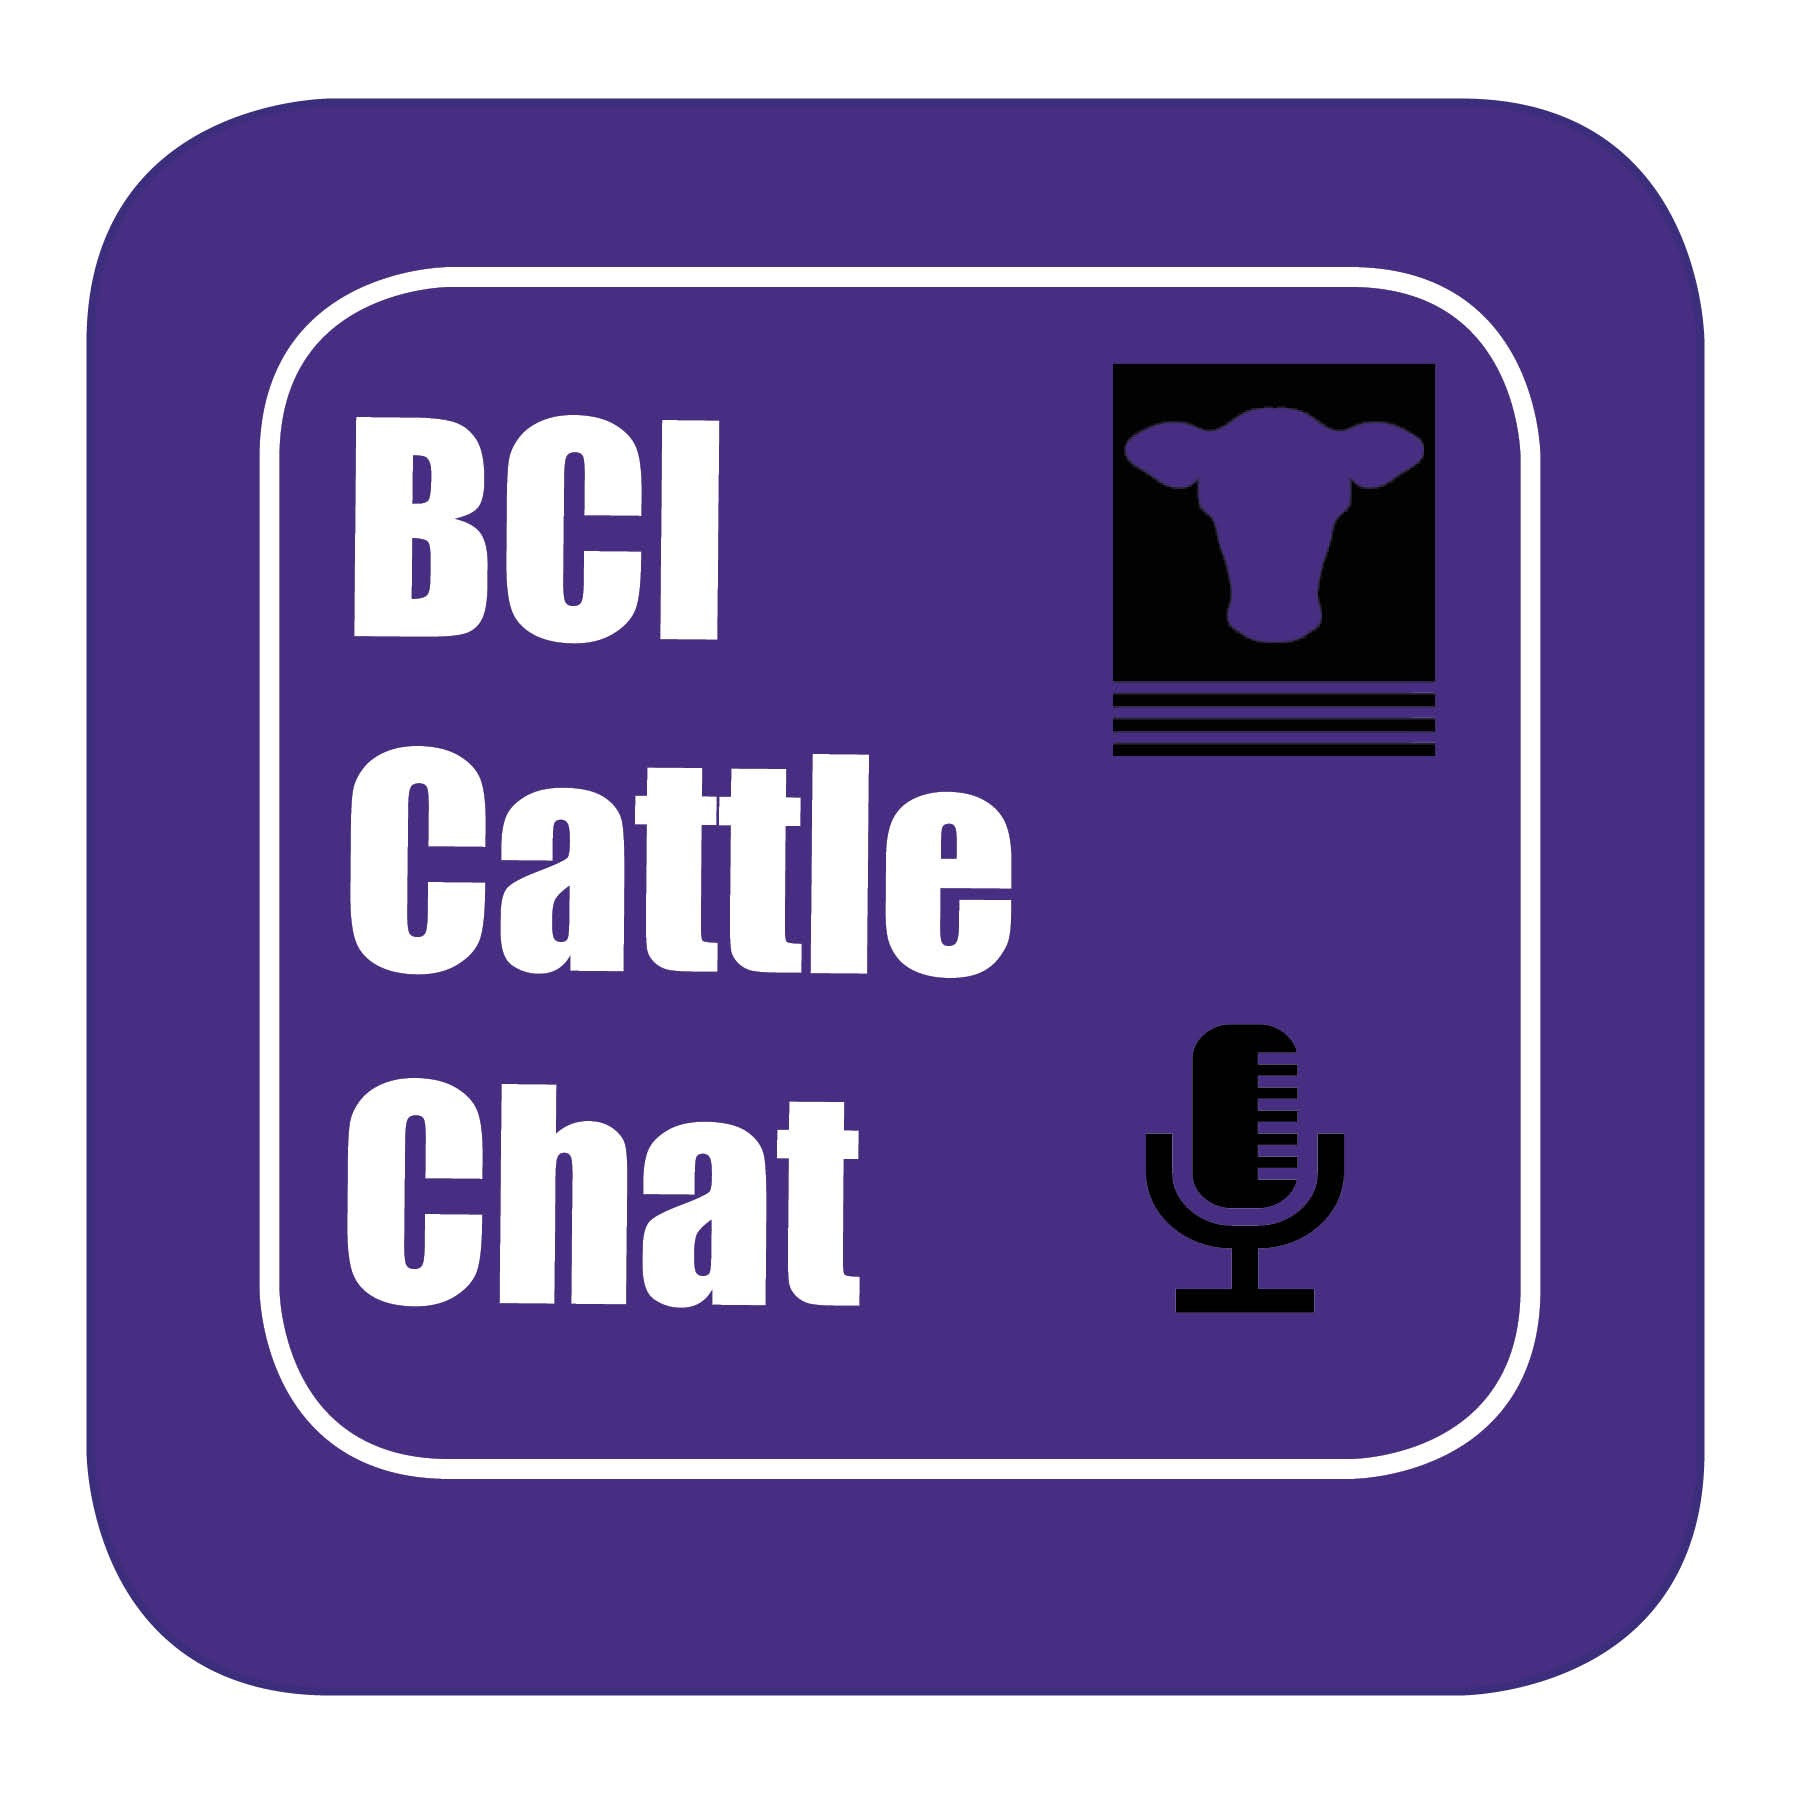 BCI Cattle Chat- Episode 28